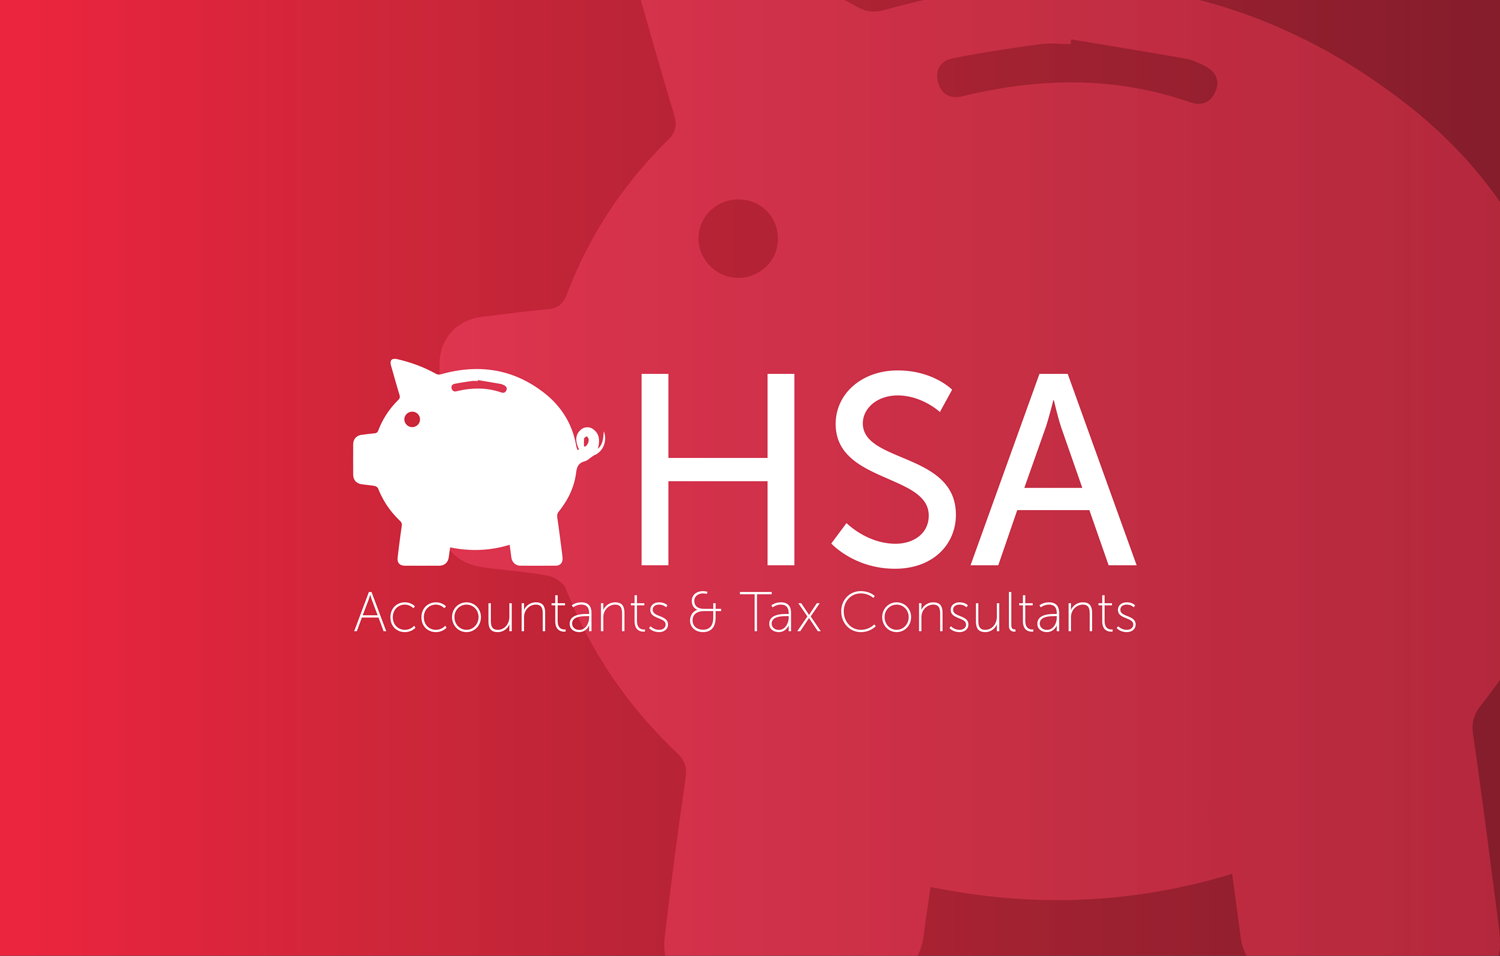 HSA Accountants